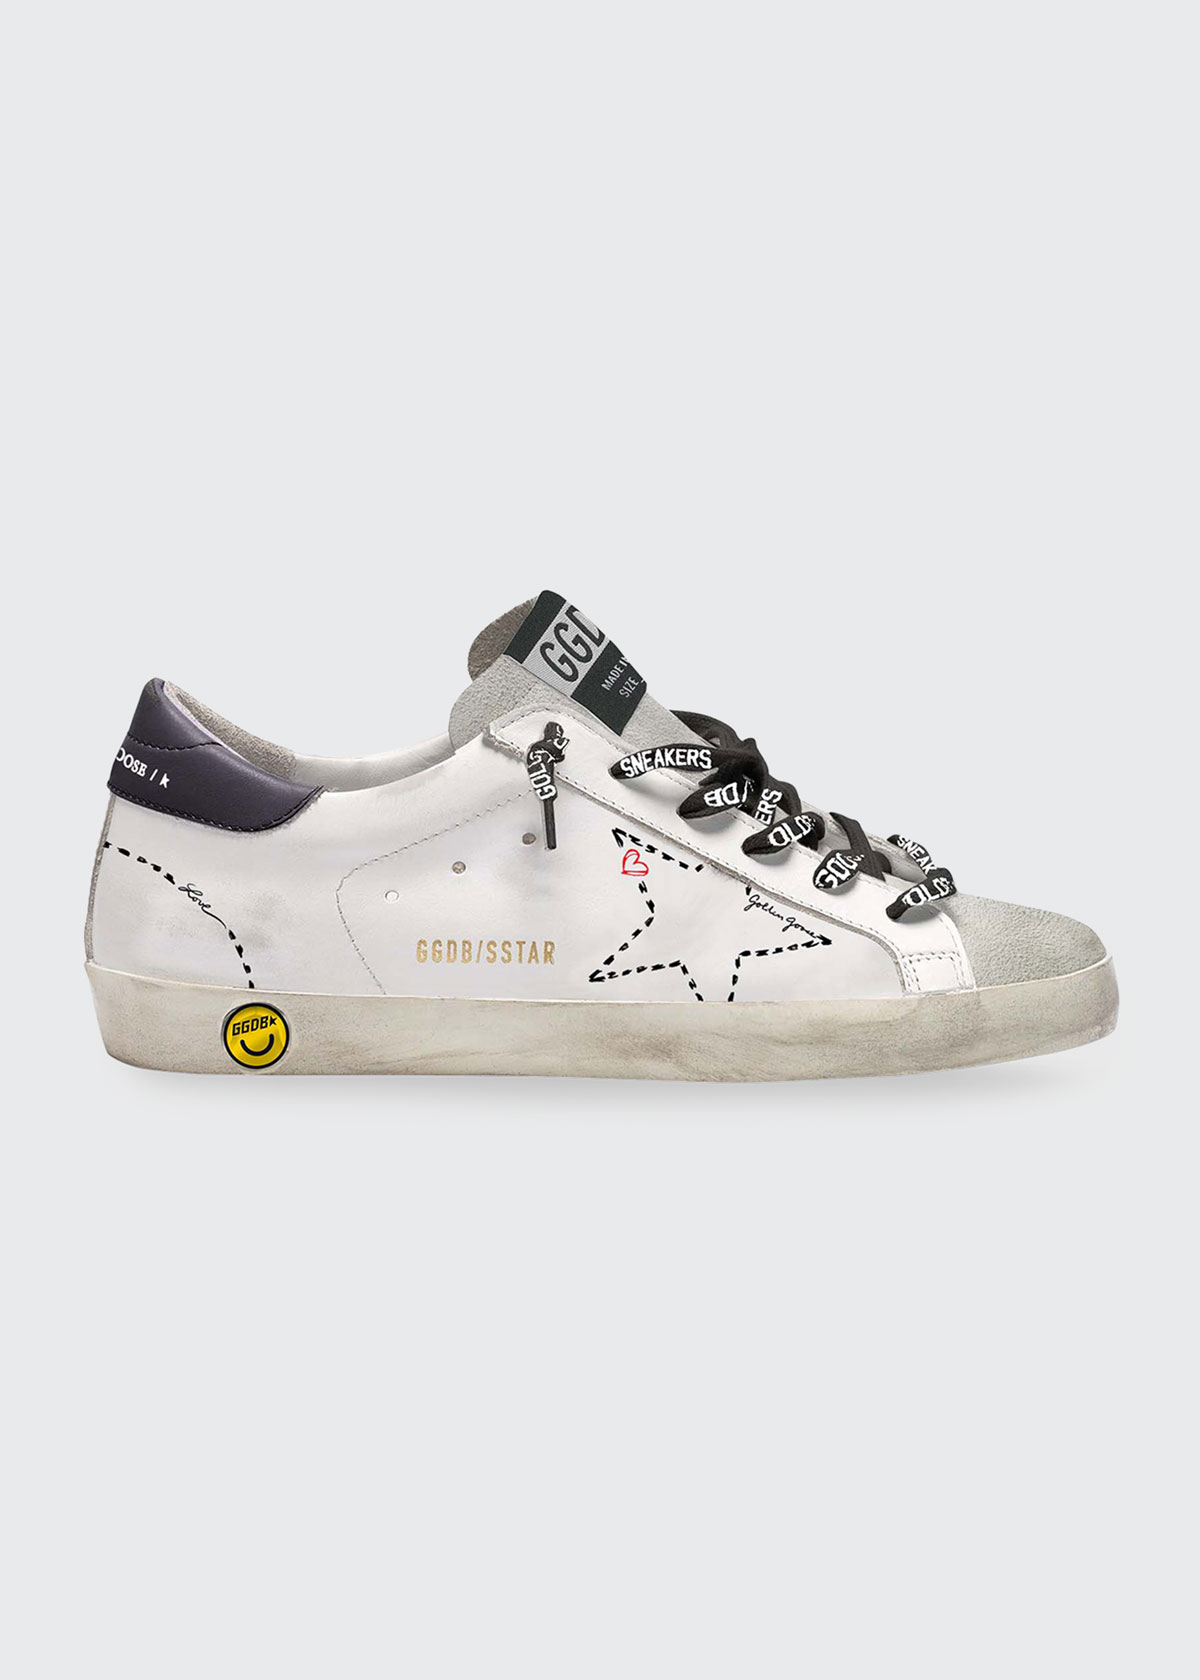 Golden Goose GIRL'S SUPERSTAR DOTTED OUTLINE PRINT SNEAKERS, BABY/TODDLERS